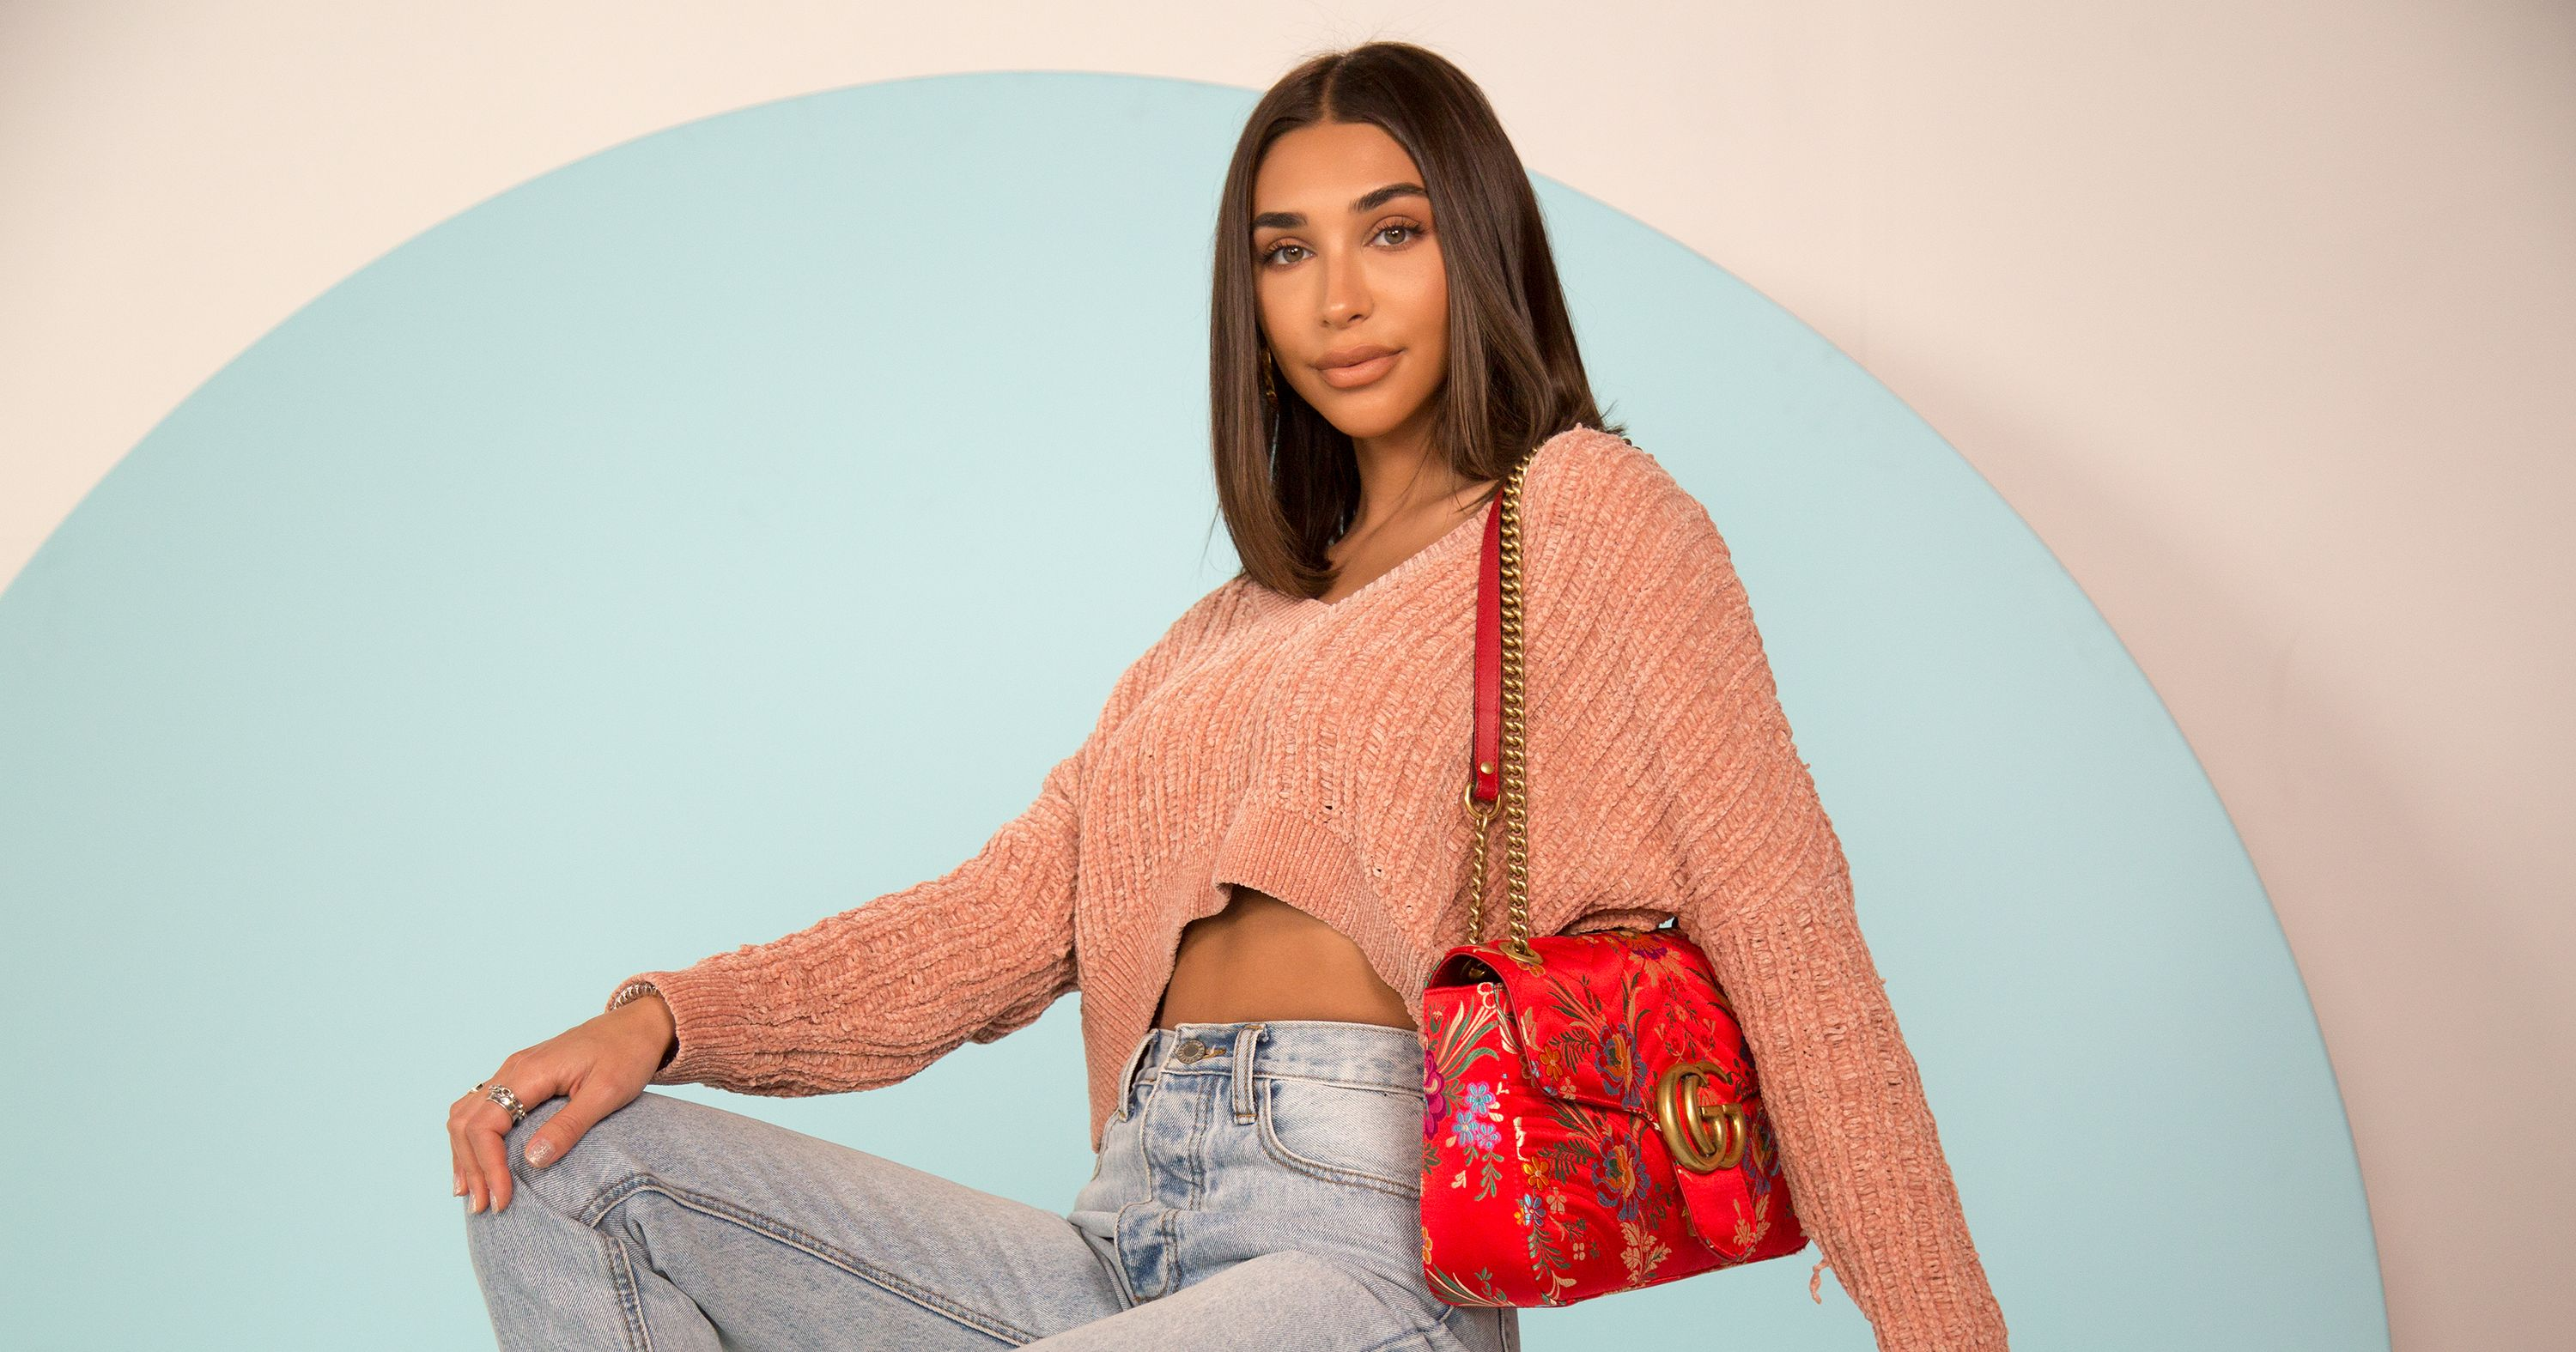 Chantel Jeffries Ethnicity, Race and Nationality